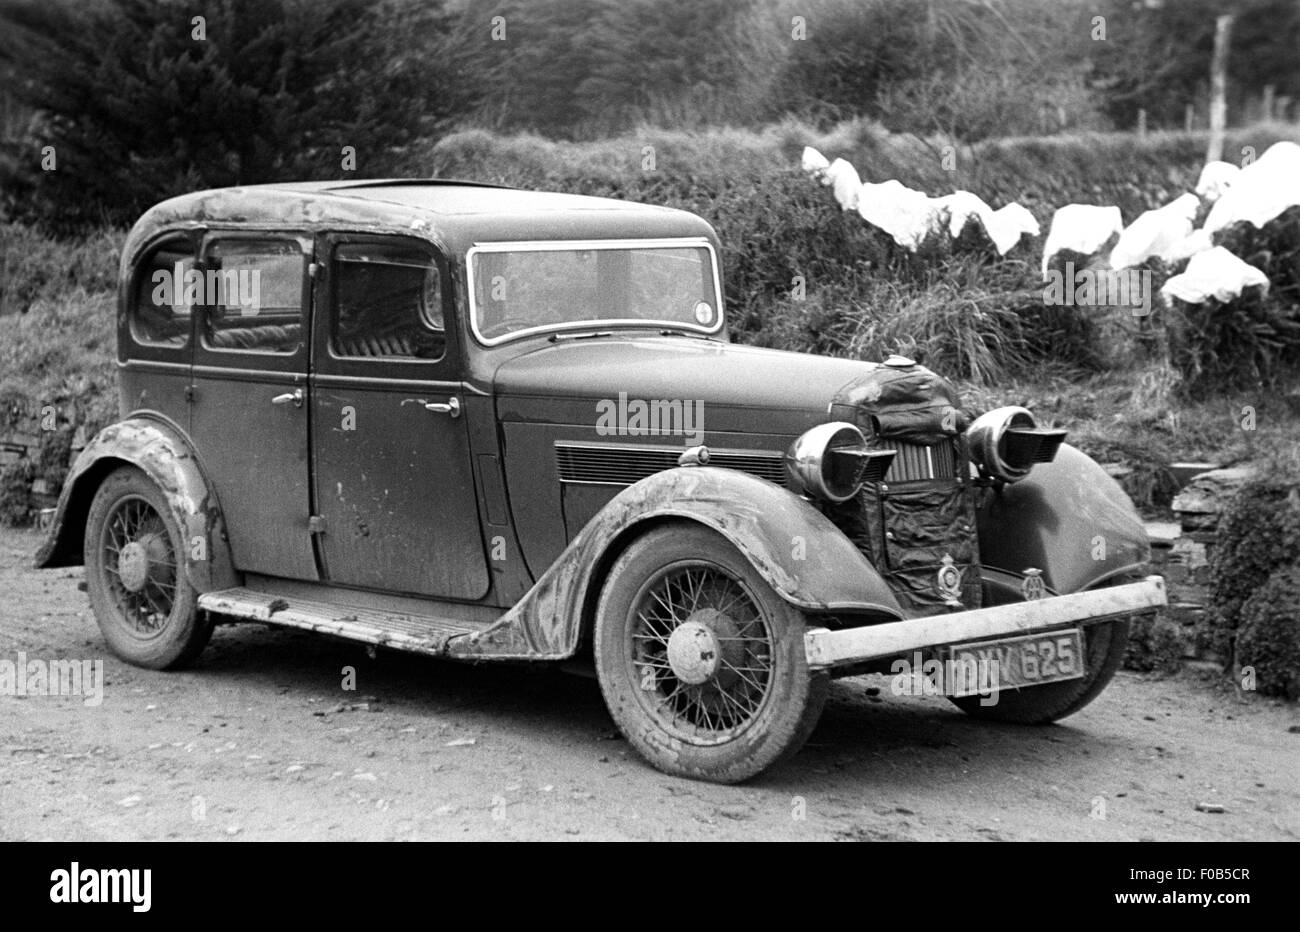 A vintage saloon car in the 1940s - Stock Image